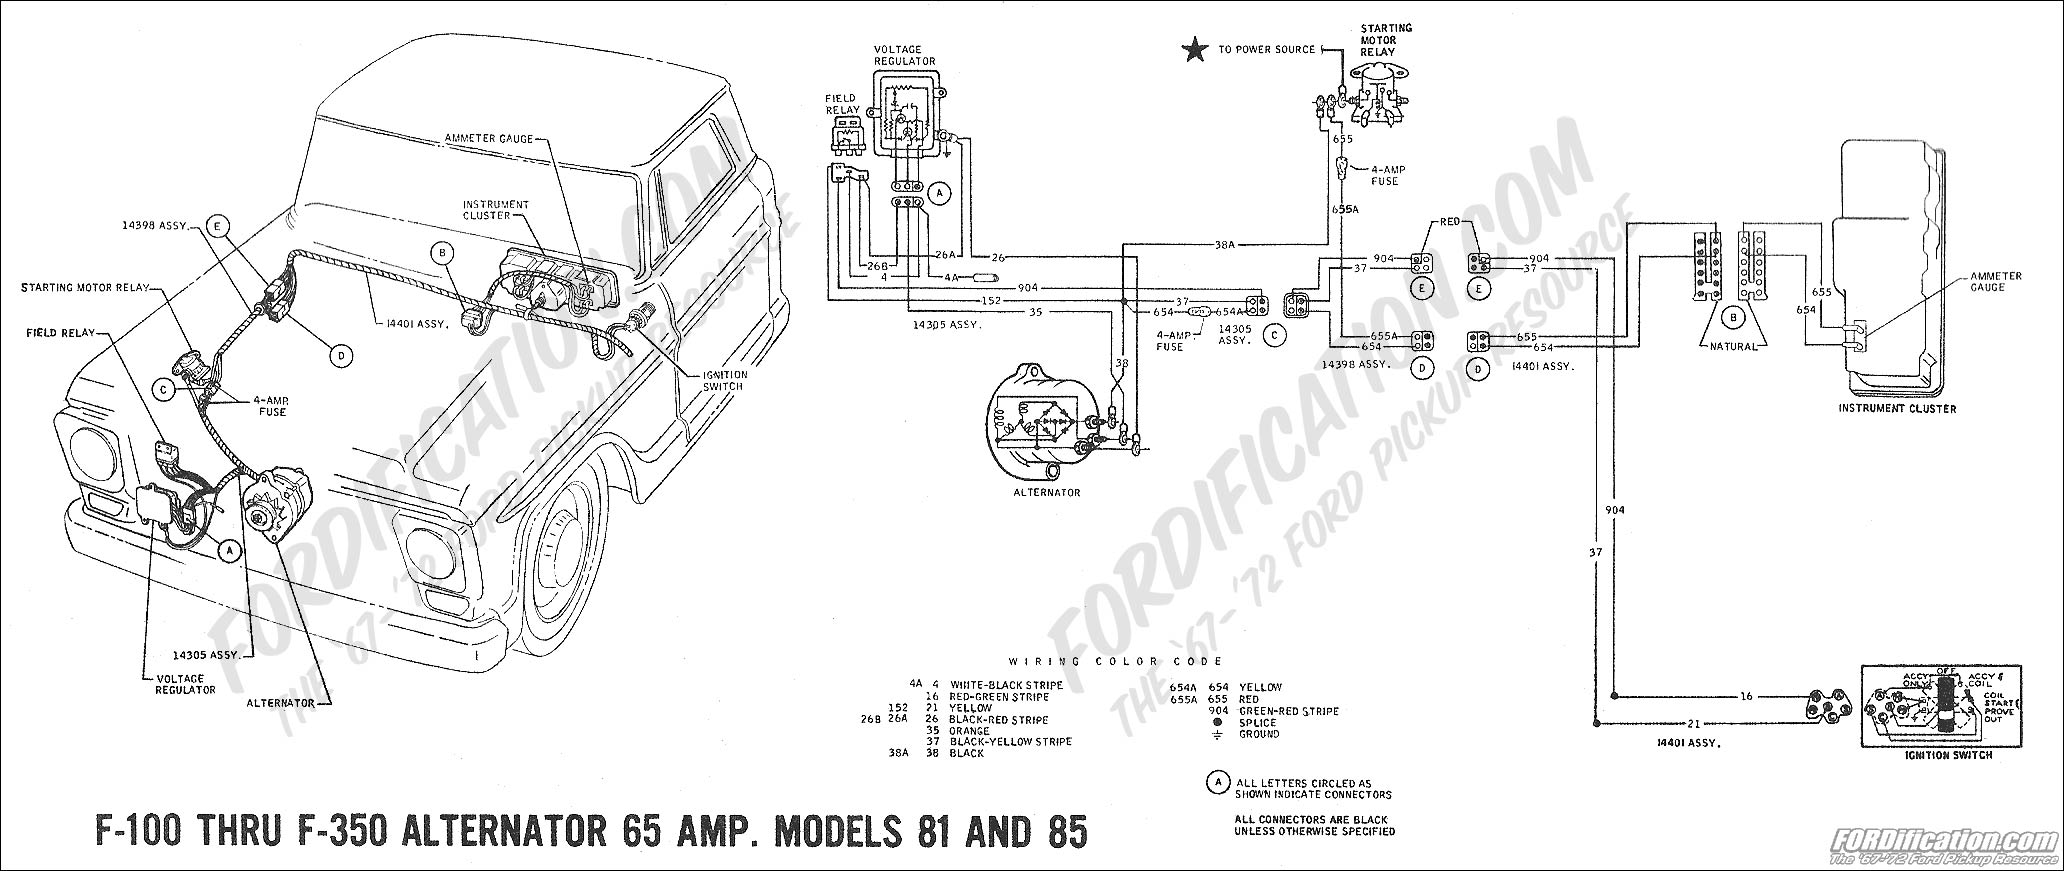 wiring_69charging03 1977 ford f100 alternator wiring diagram wiring diagram and 1969 Ford F100 Steering Column Wiring Diagram at gsmportal.co